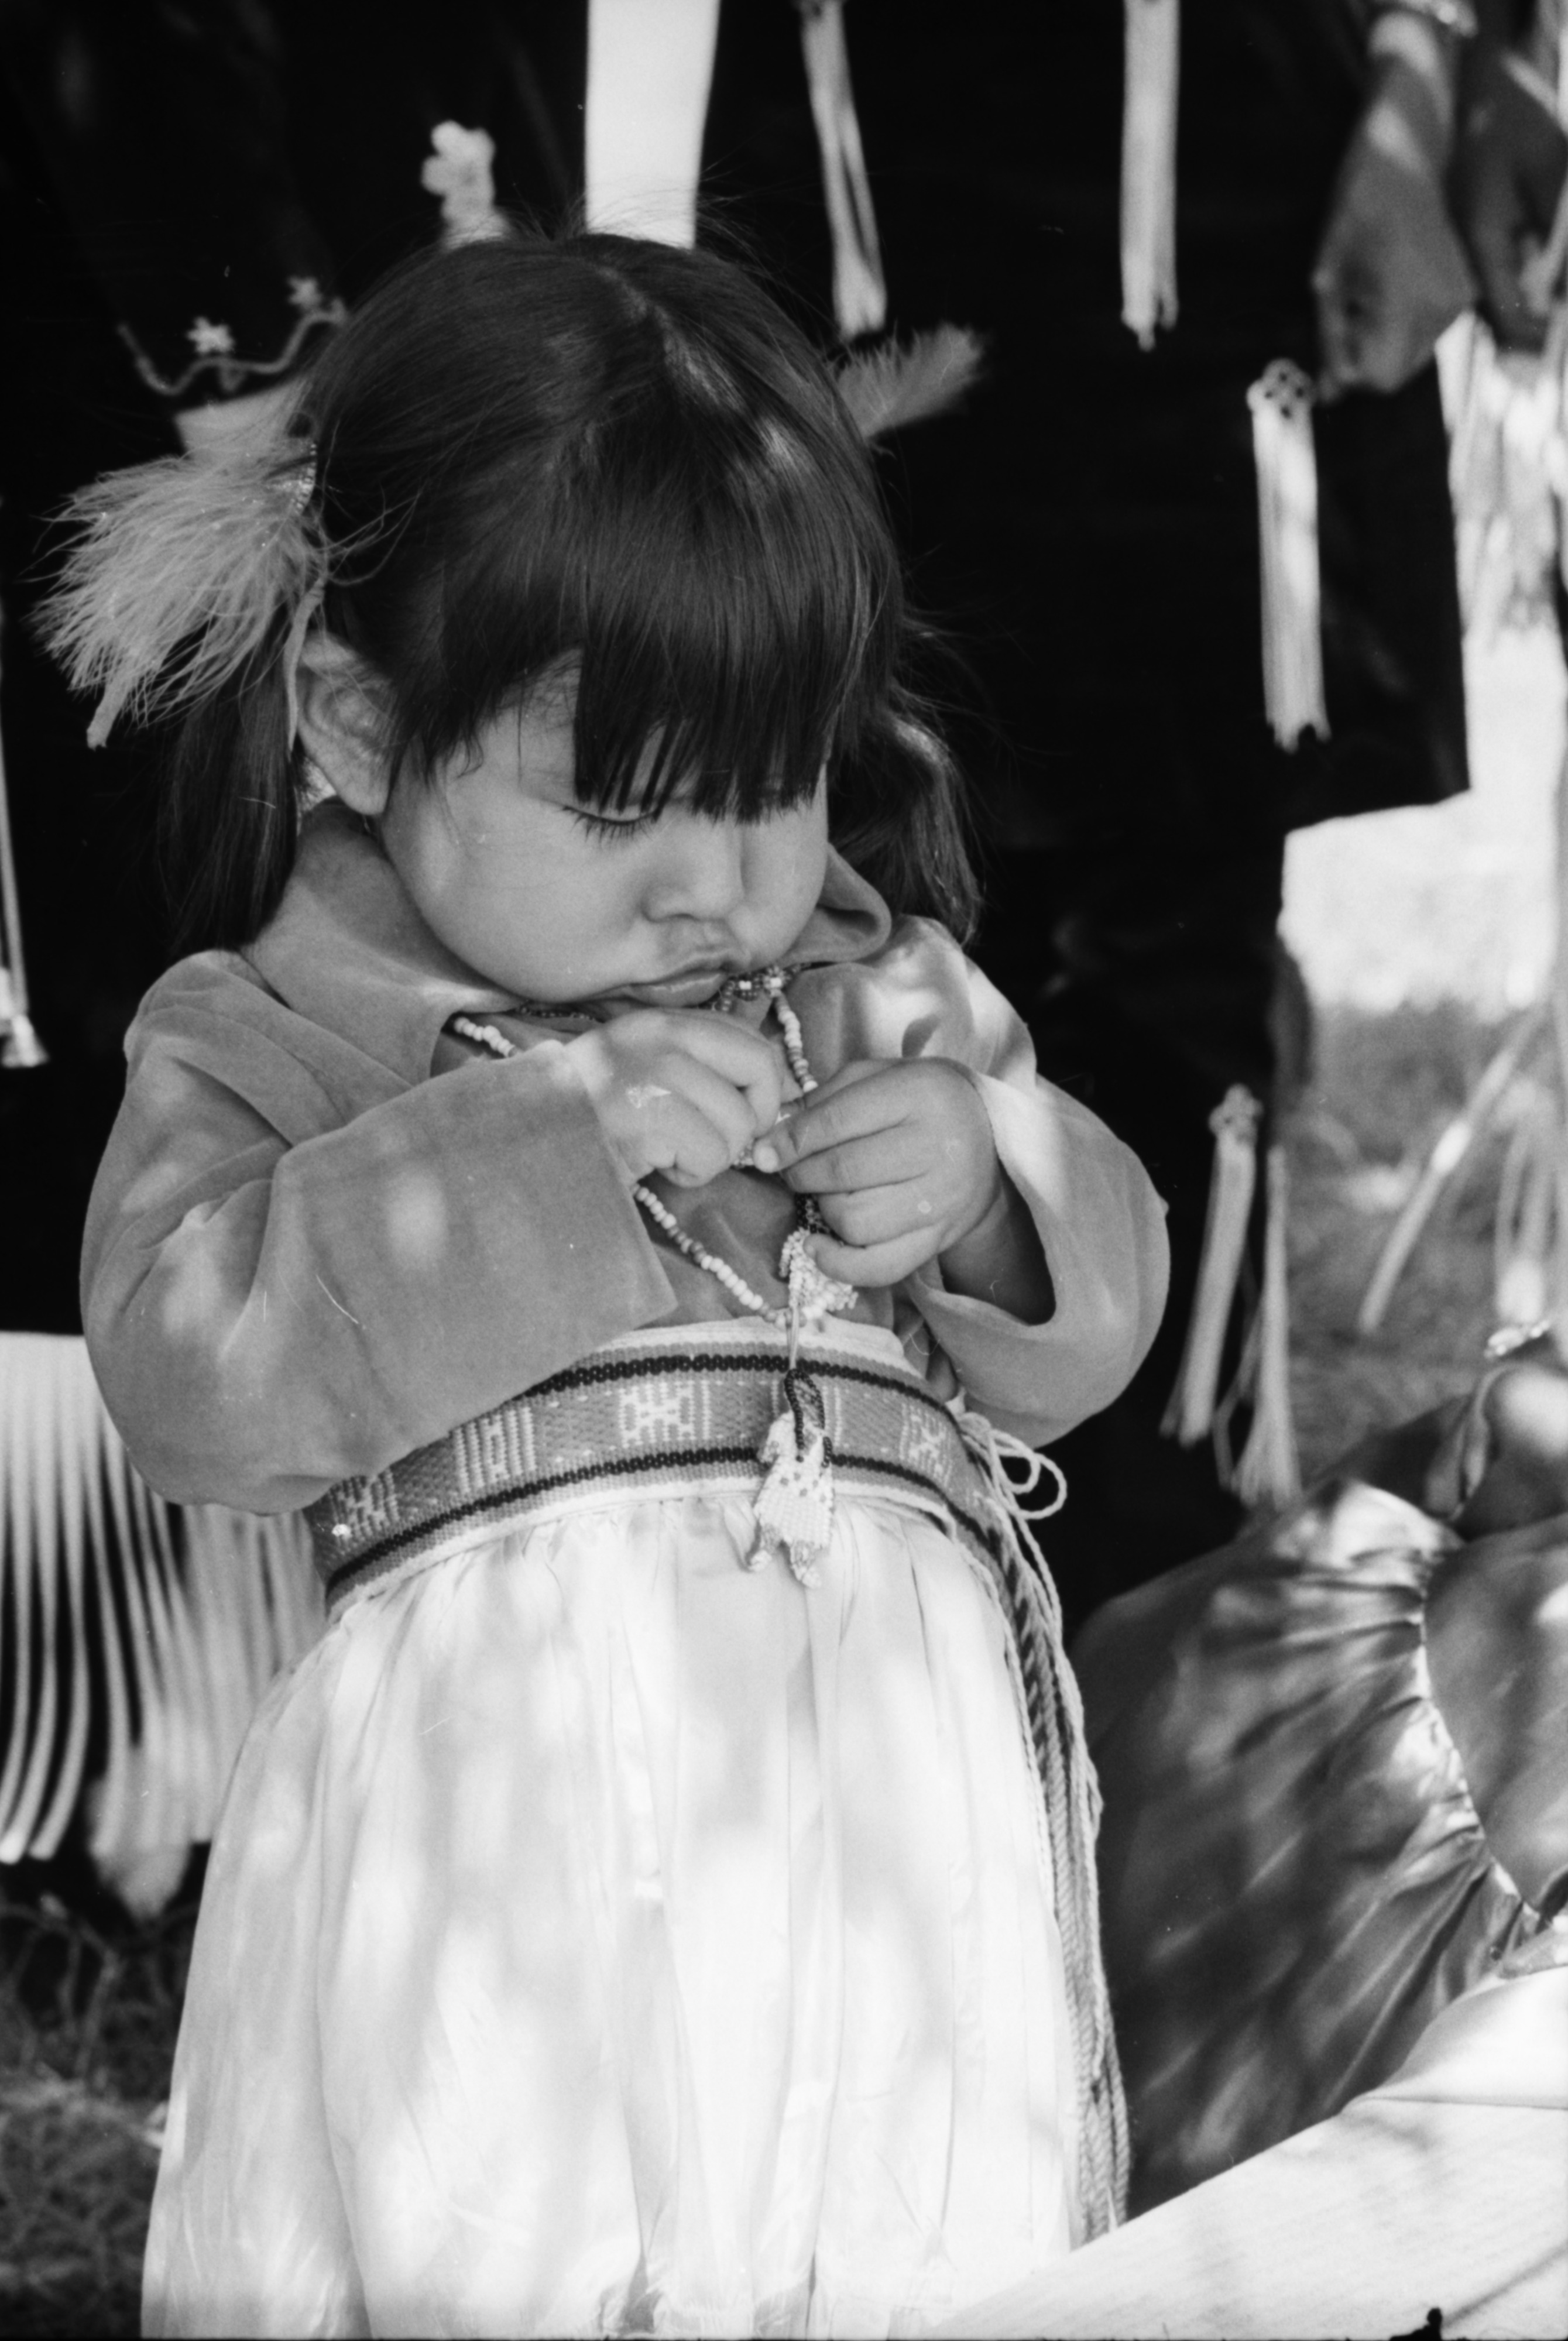 Iva Anderson of Traverse City at the annual Powwow sponsored by American Indians Unlimited (AIU), at Knights of Columbus Park, August 1972 image